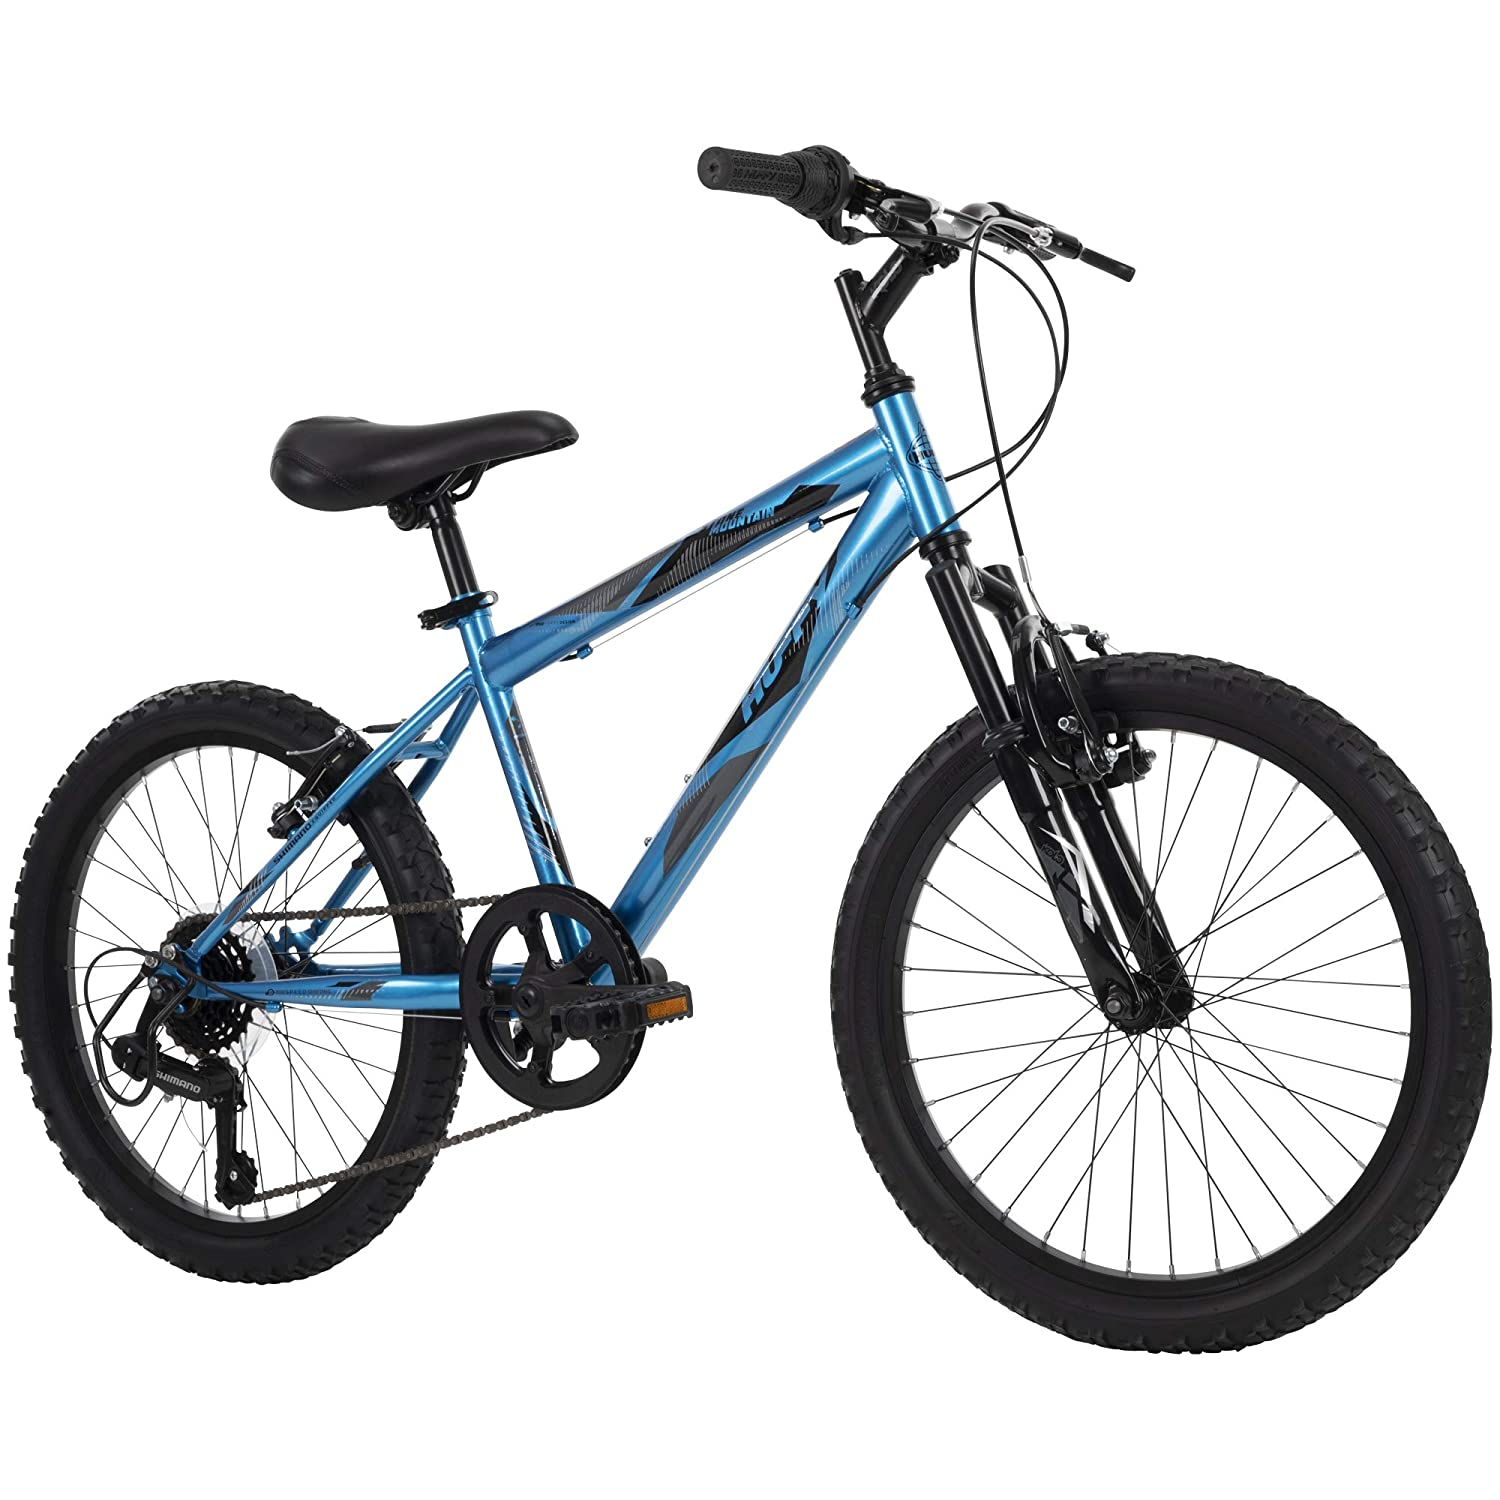 Huffy Kids Hardtail Mountain Bike, 6-Speed